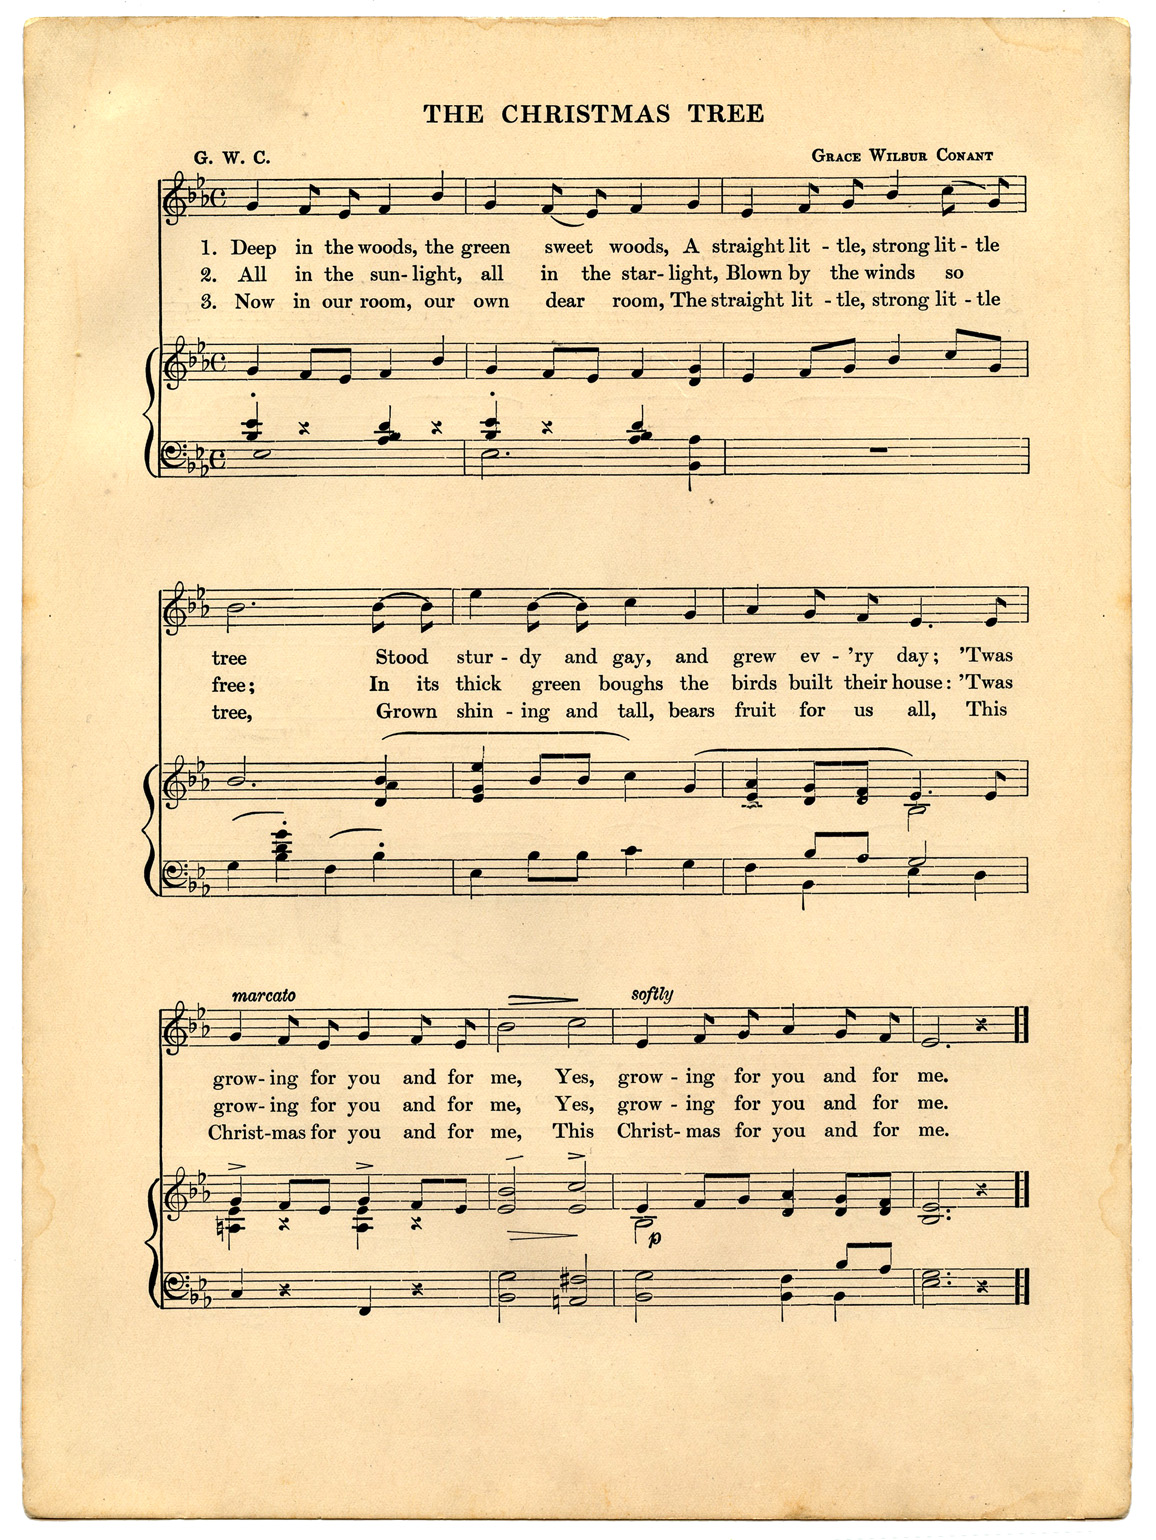 graphic relating to Vintage Sheet Music Printable known as Classic Xmas Sheet Songs Printable - The Graphics Fairy